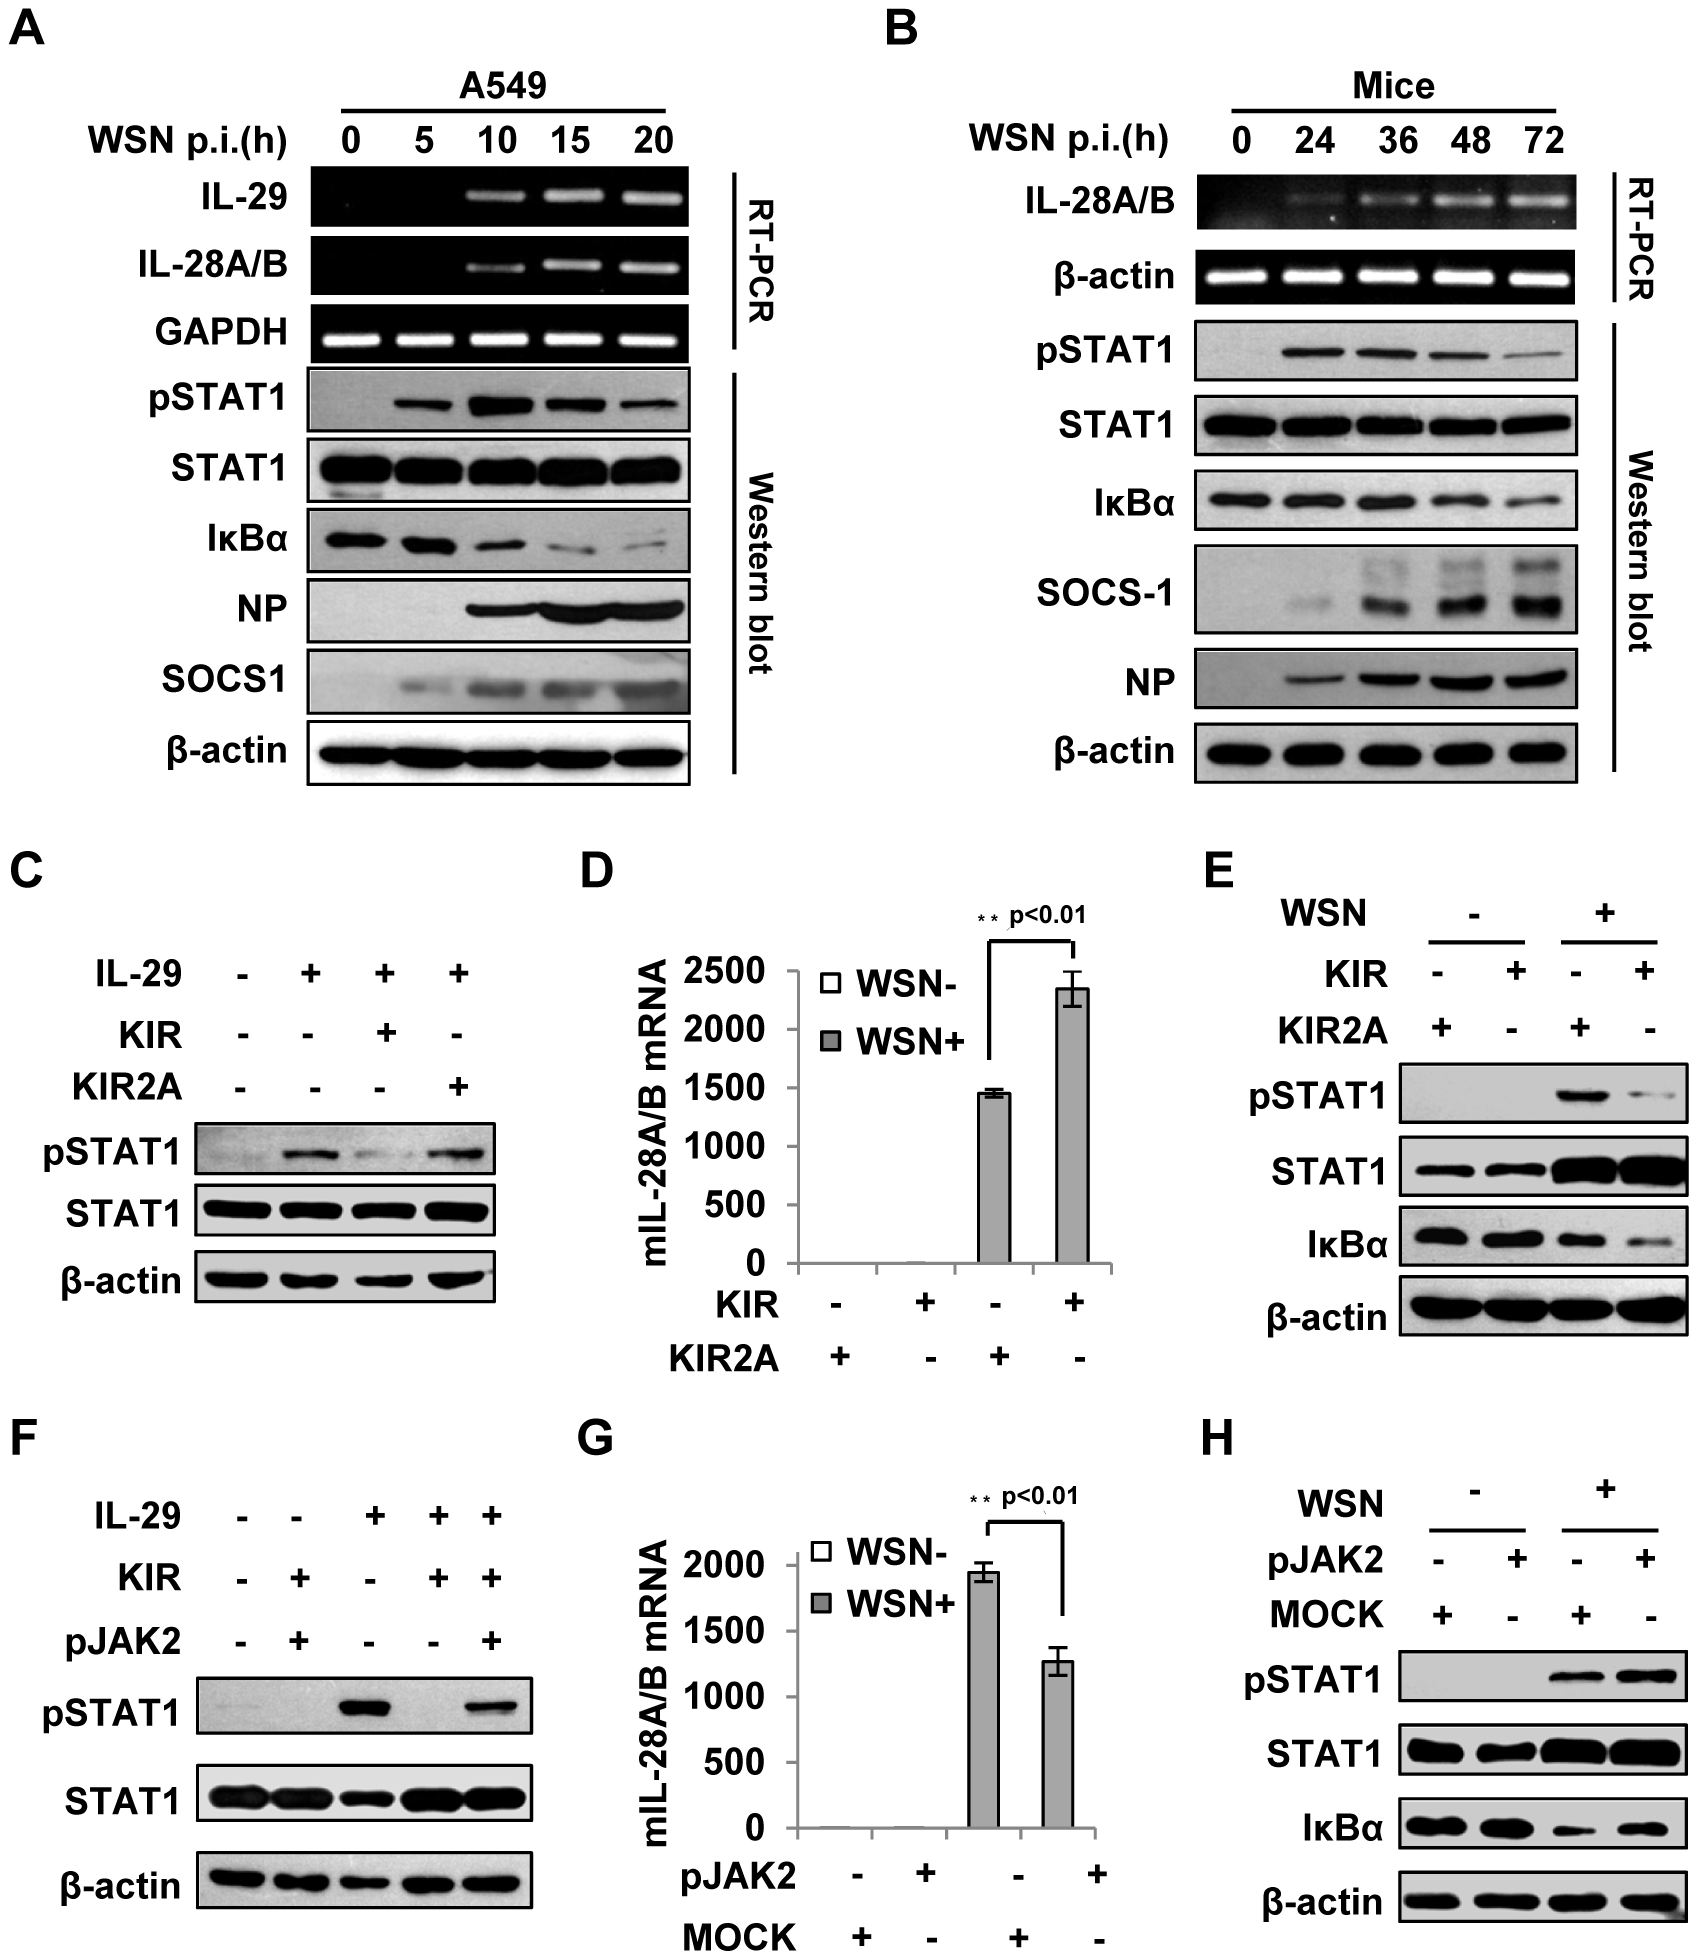 Suppression of cytokine signaling by SOCS-1 contributes to overproduction of IFN-λ in mice.